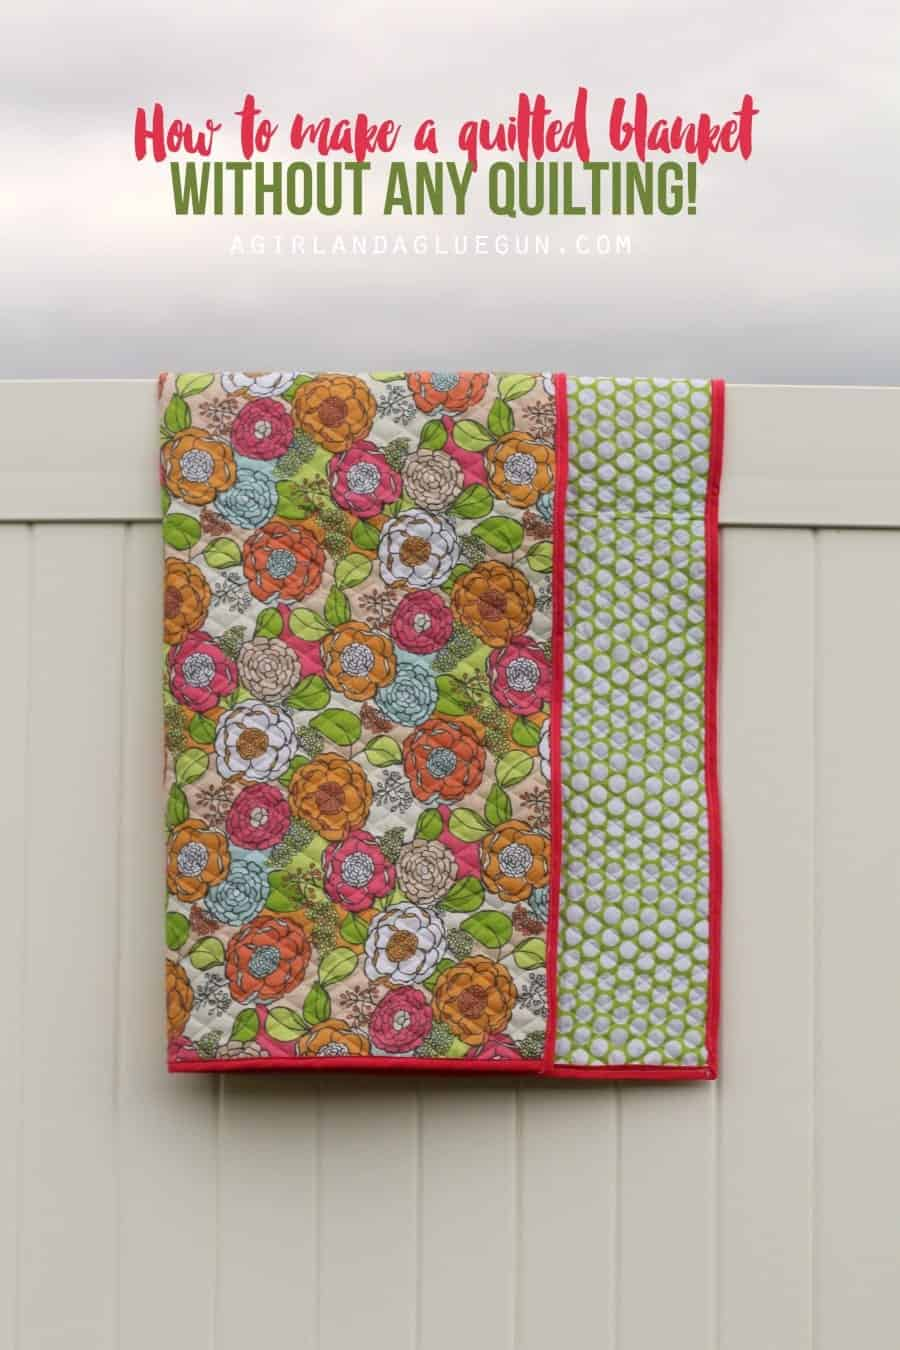 how to make a quilted blanket with very little sewing! easy knockoff!